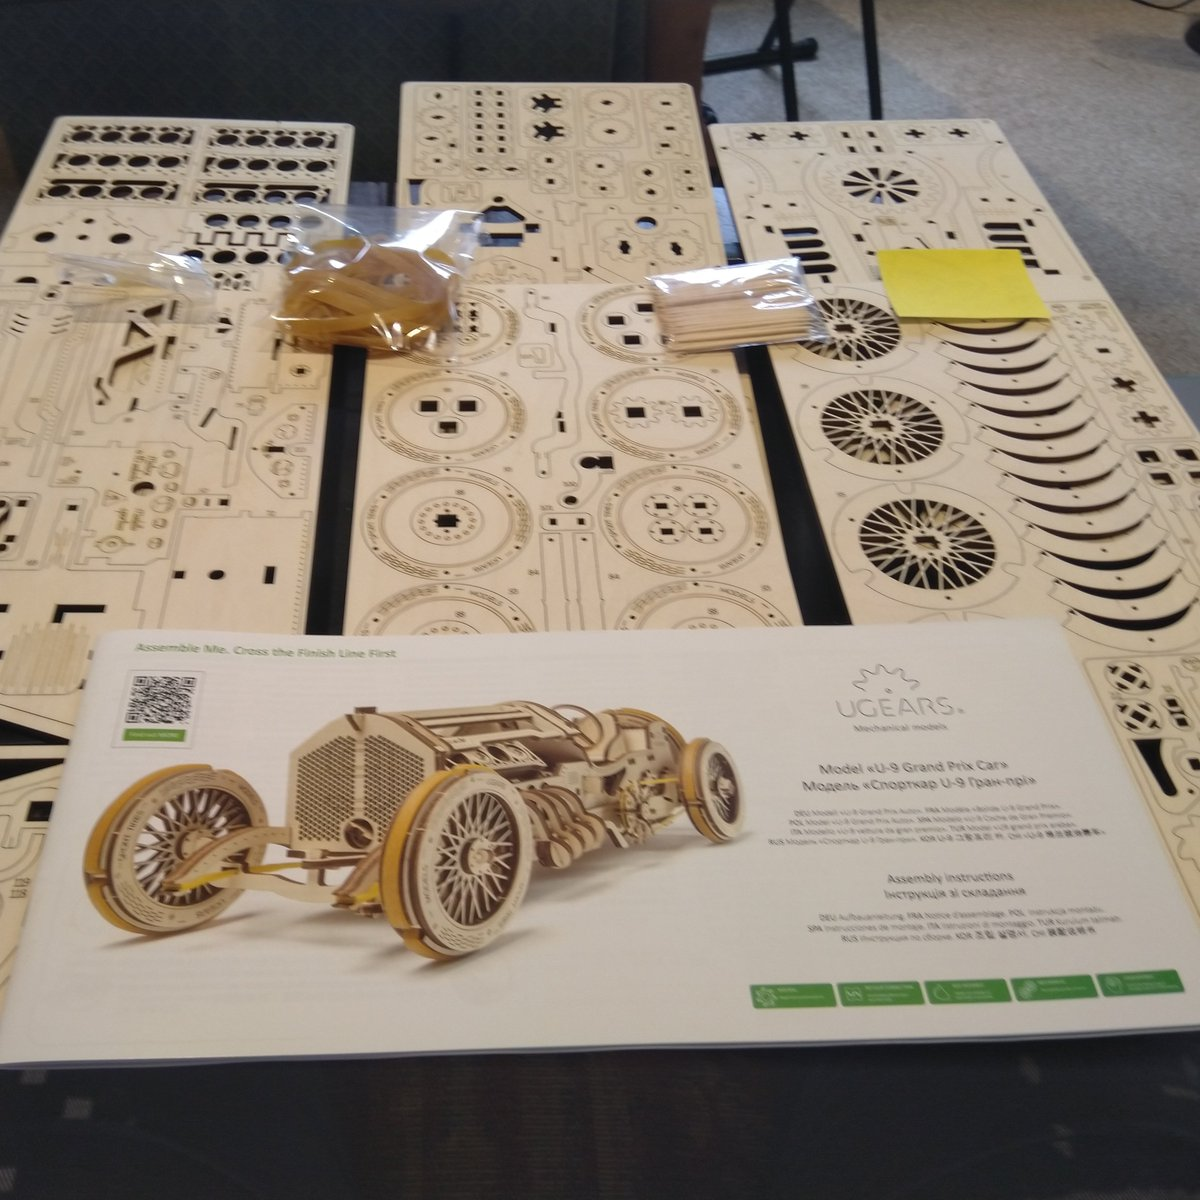 Laser-cut wooden Grand Prix car - with elastic band power